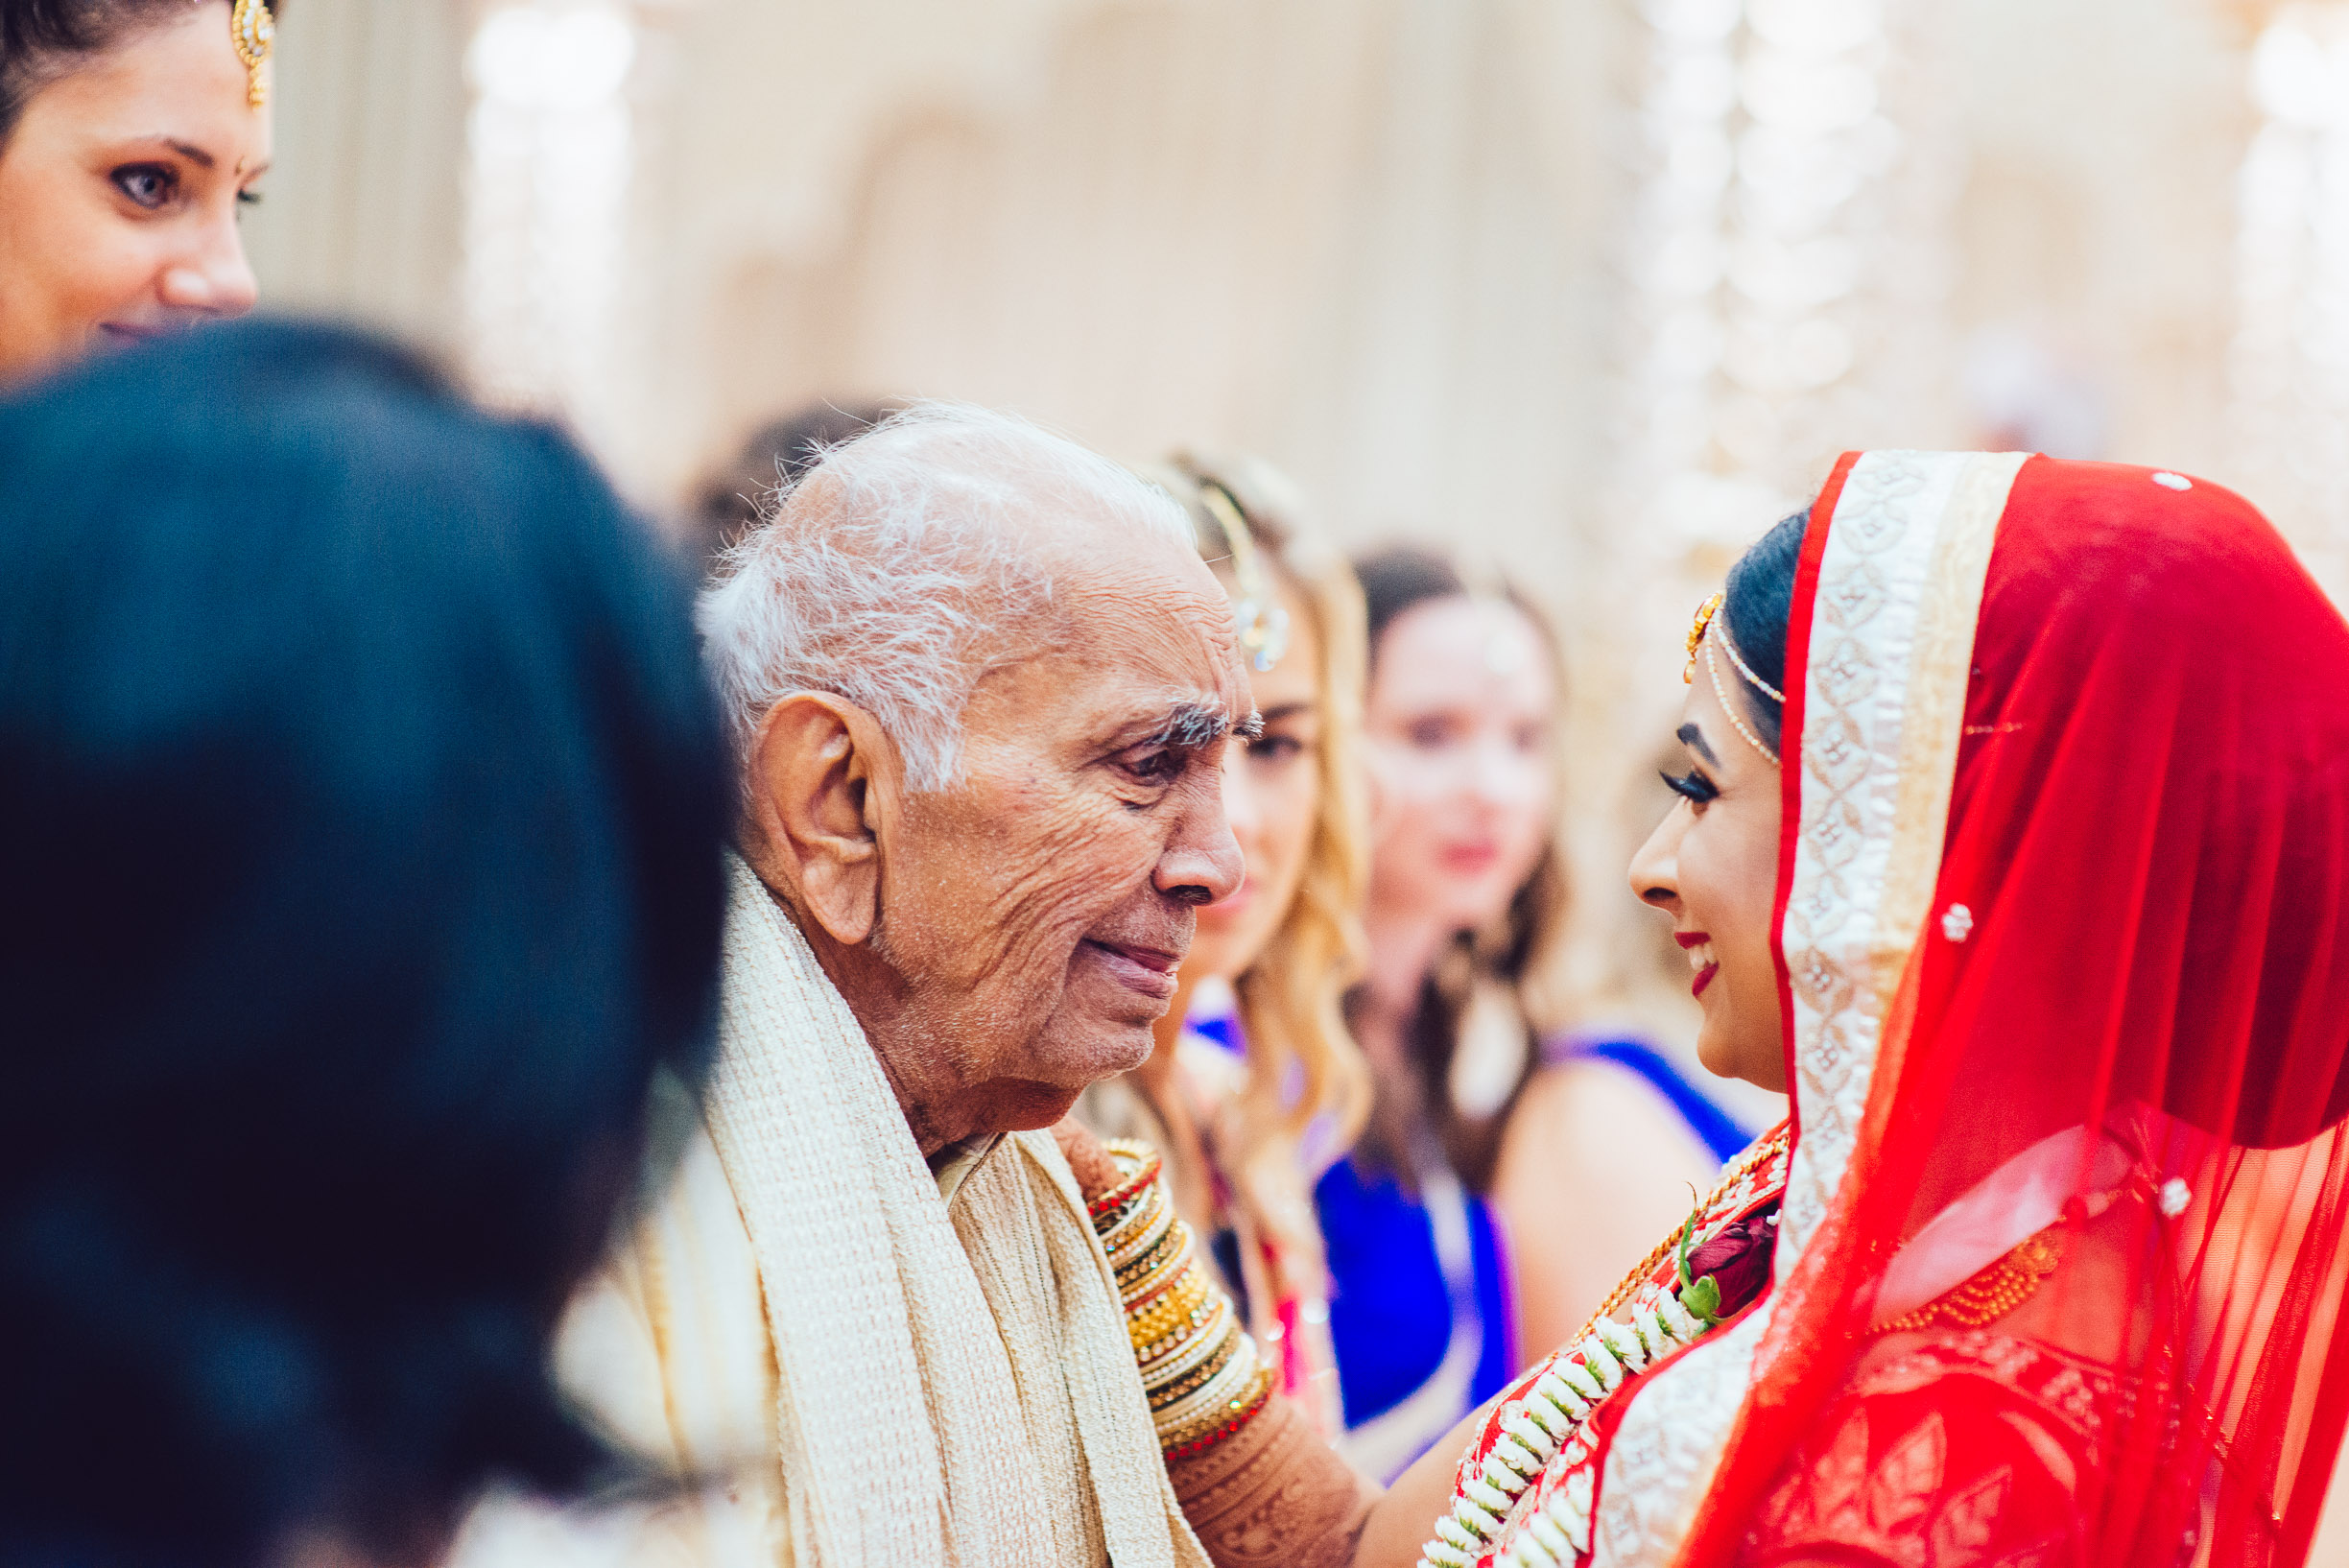 amit&ceema_eden_moments_wedding_photography-21